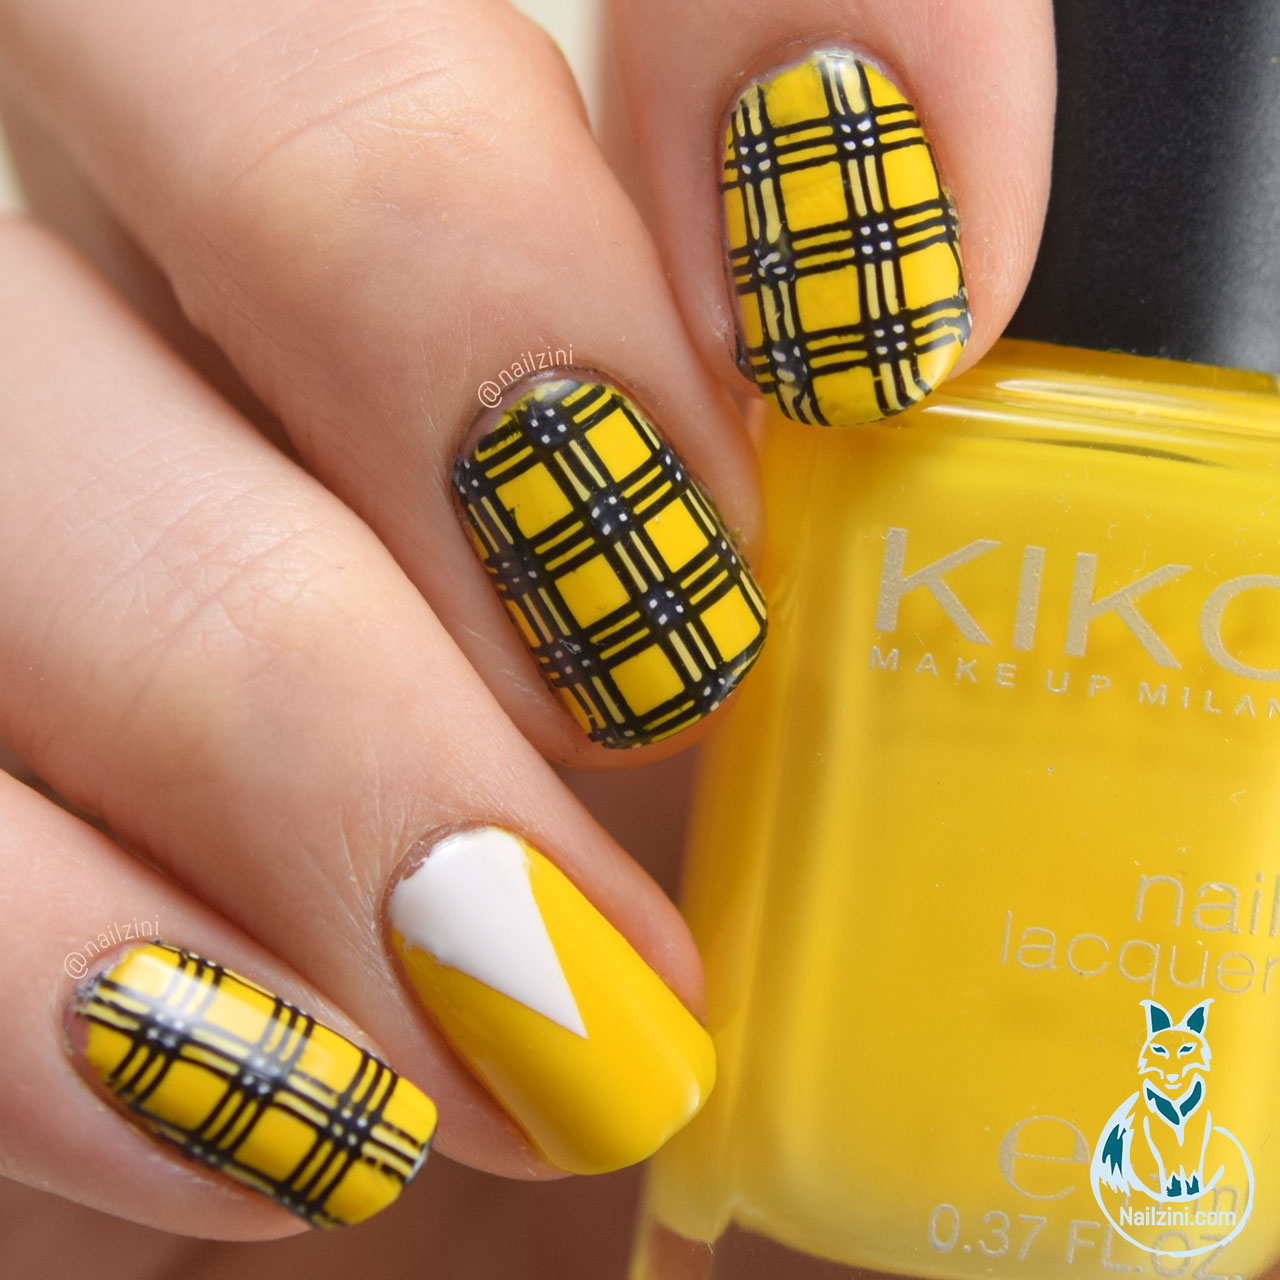 Clueless plaid Nail Art Nailzini